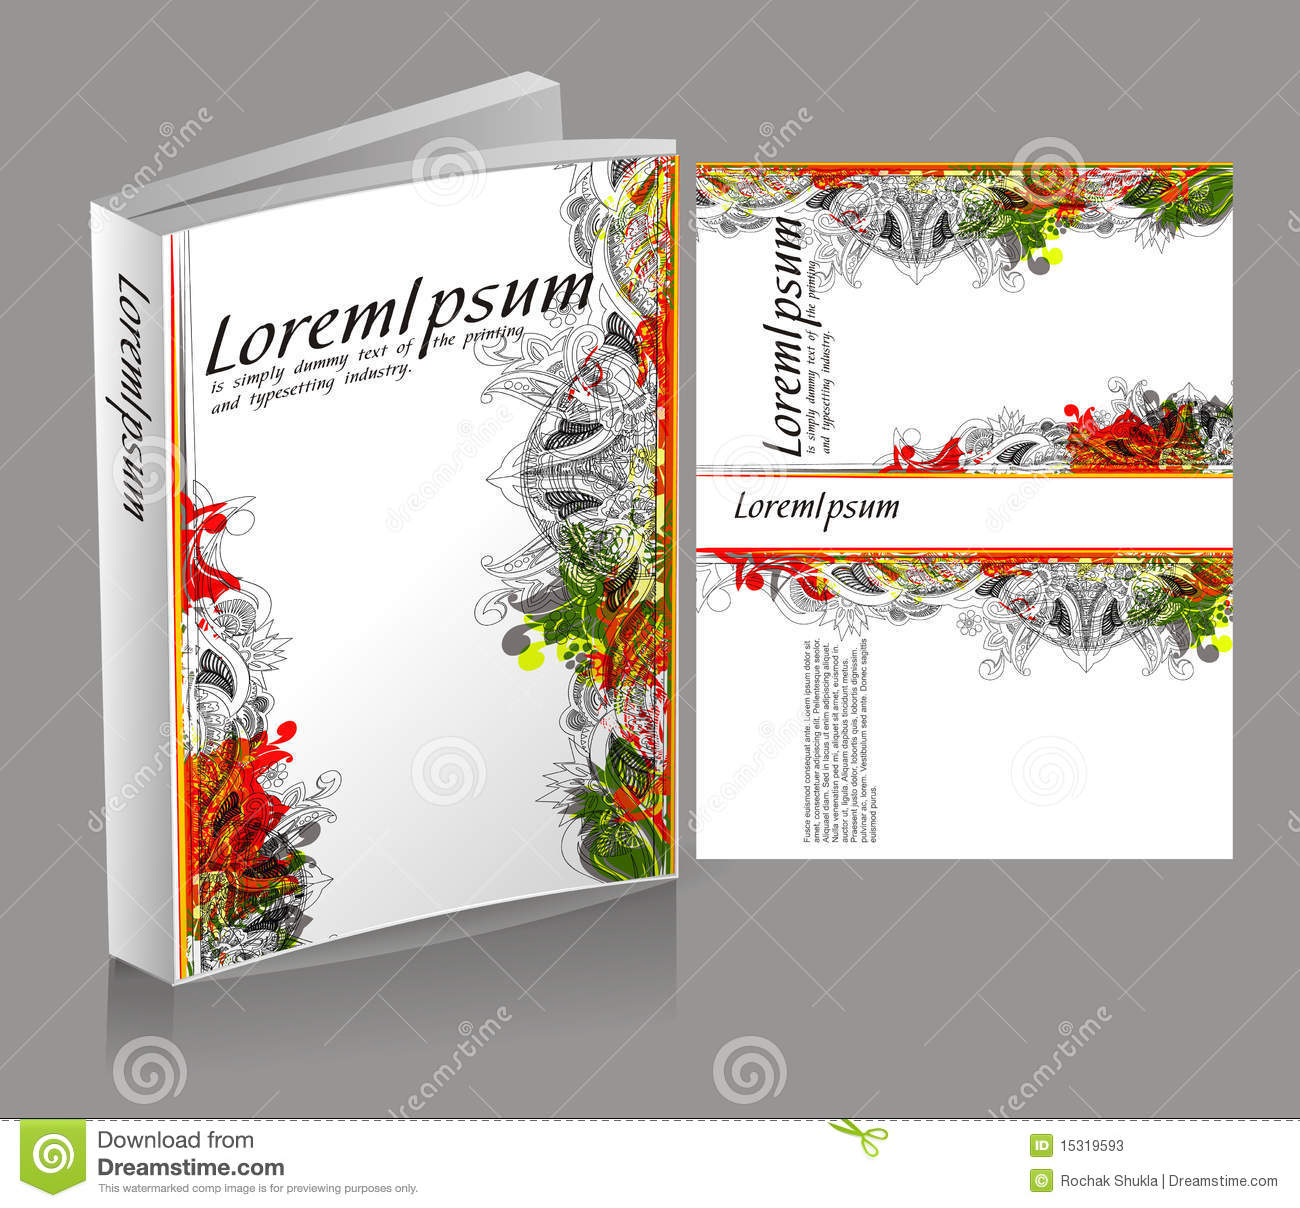 Book Cover Design Photo : Book cover design stock vector image of closed modern